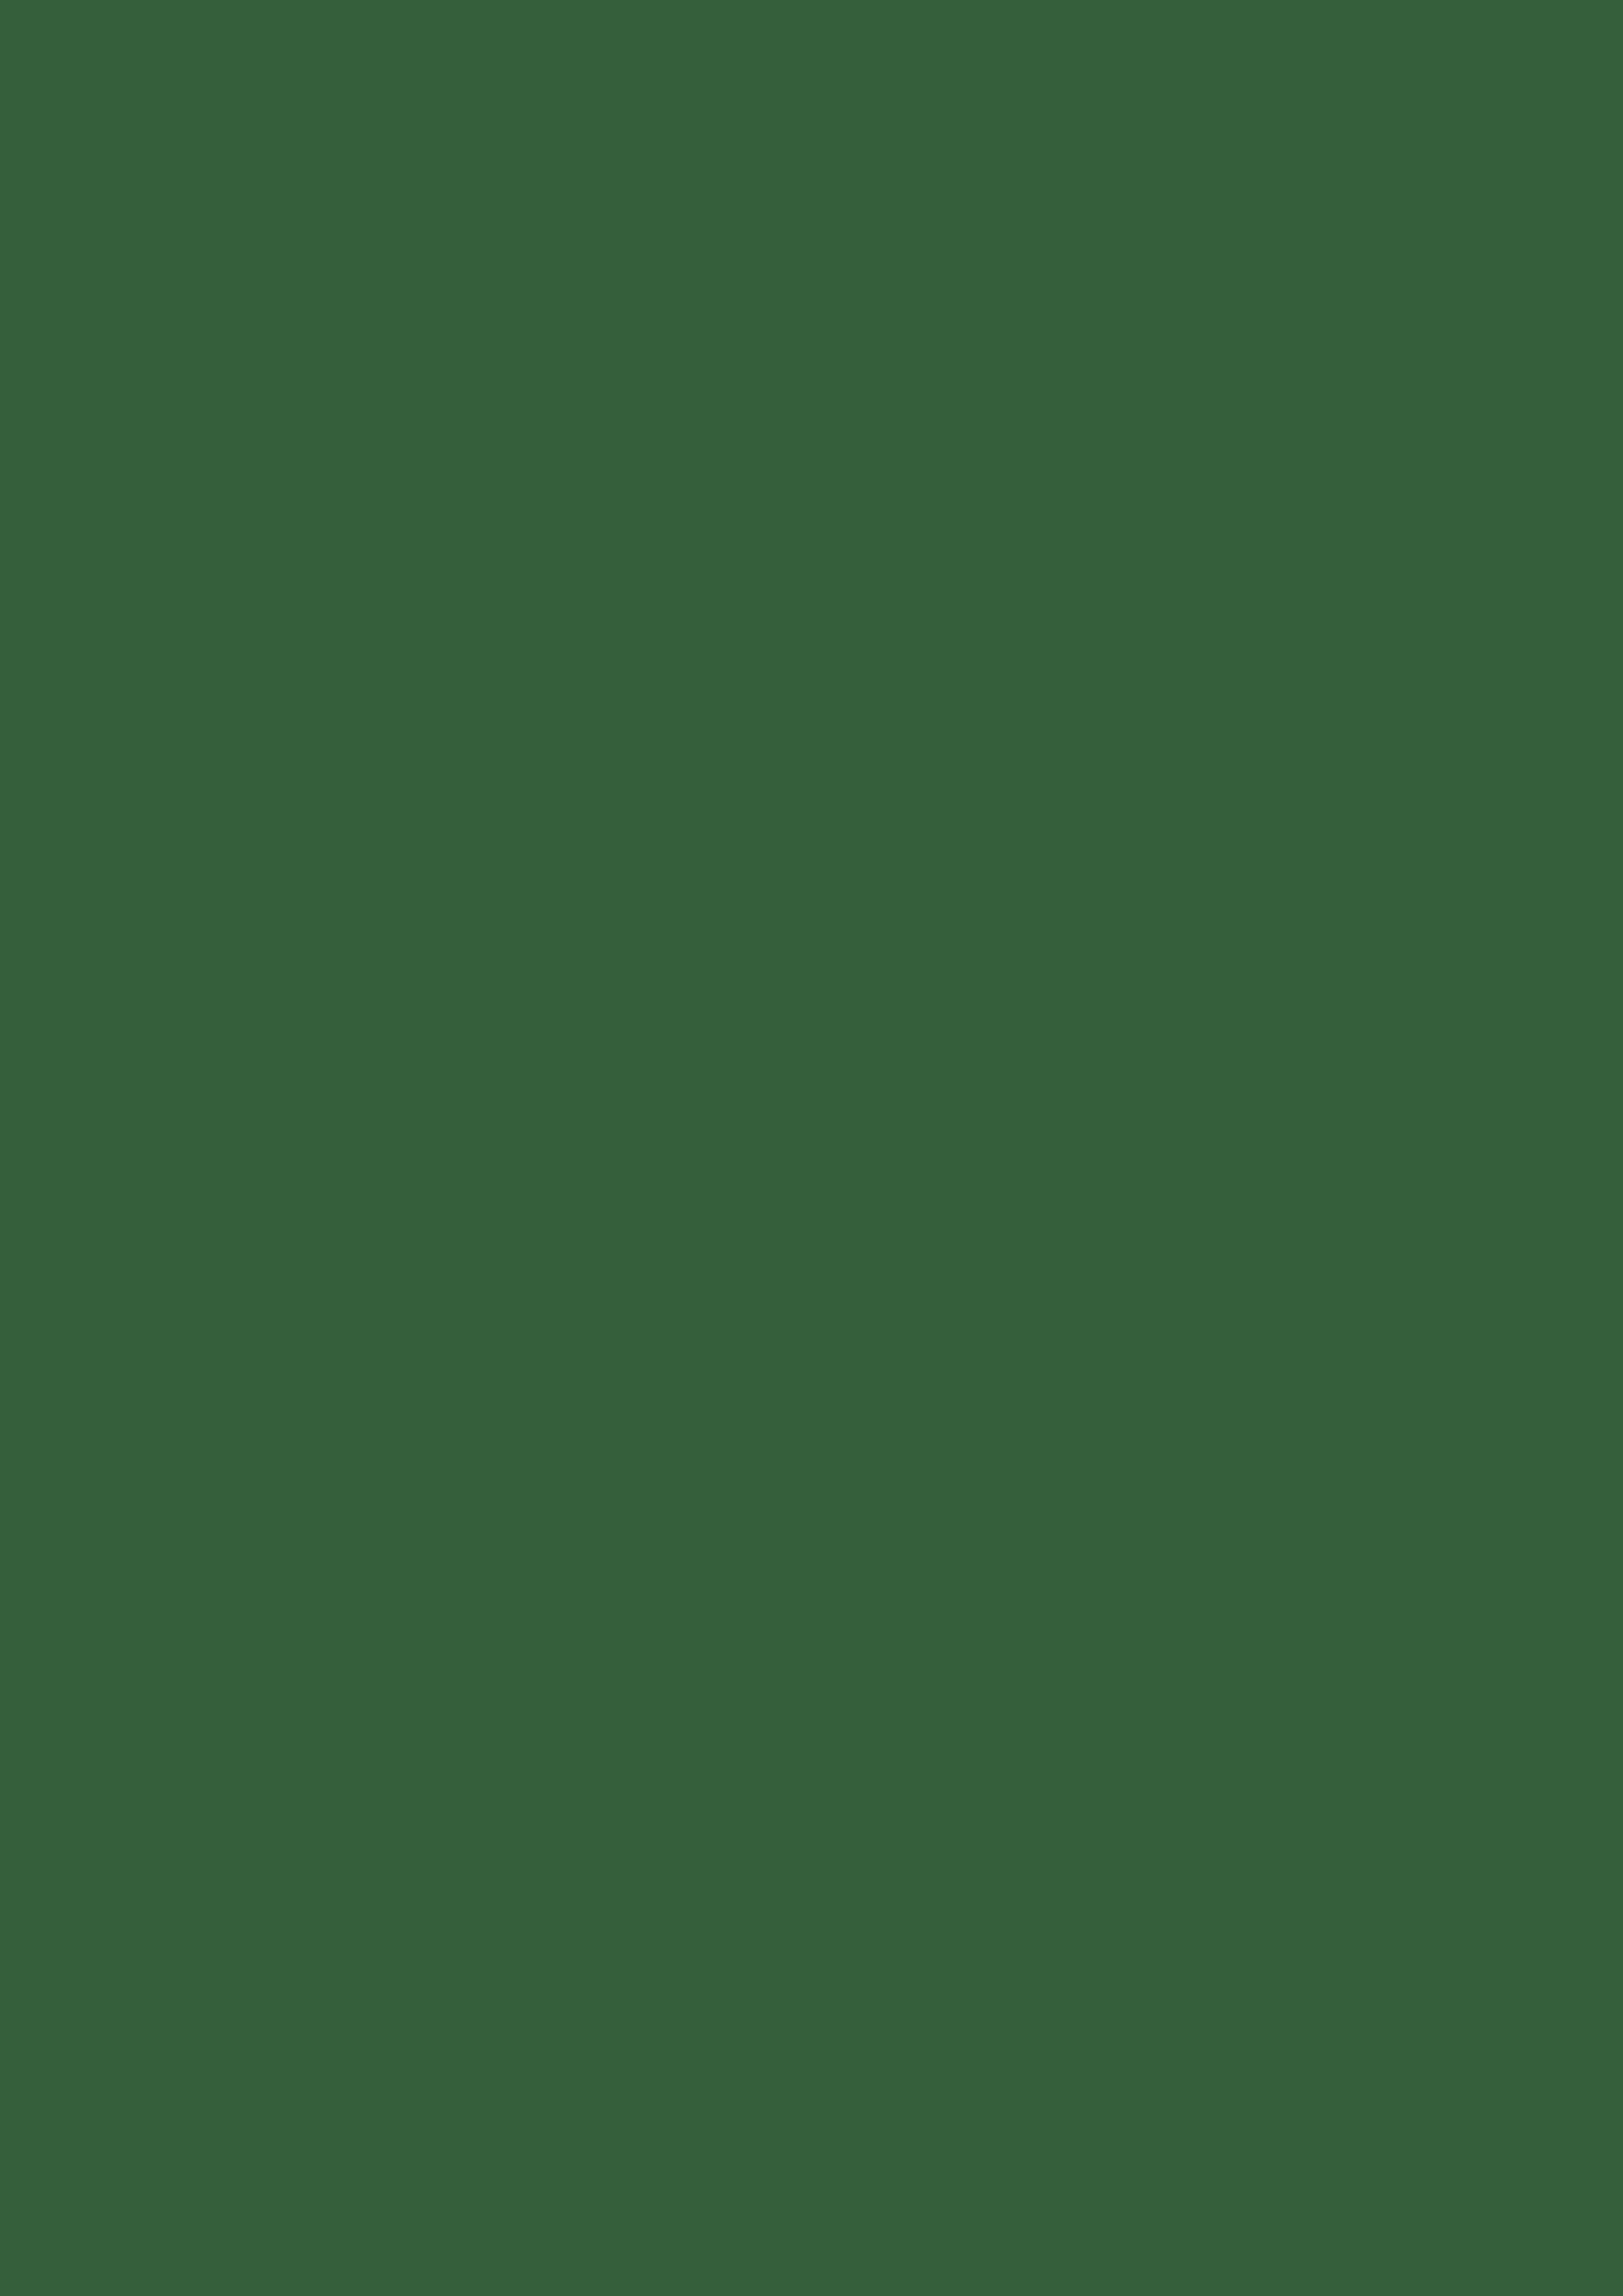 2480x3508 Deep Moss Green Solid Color Background